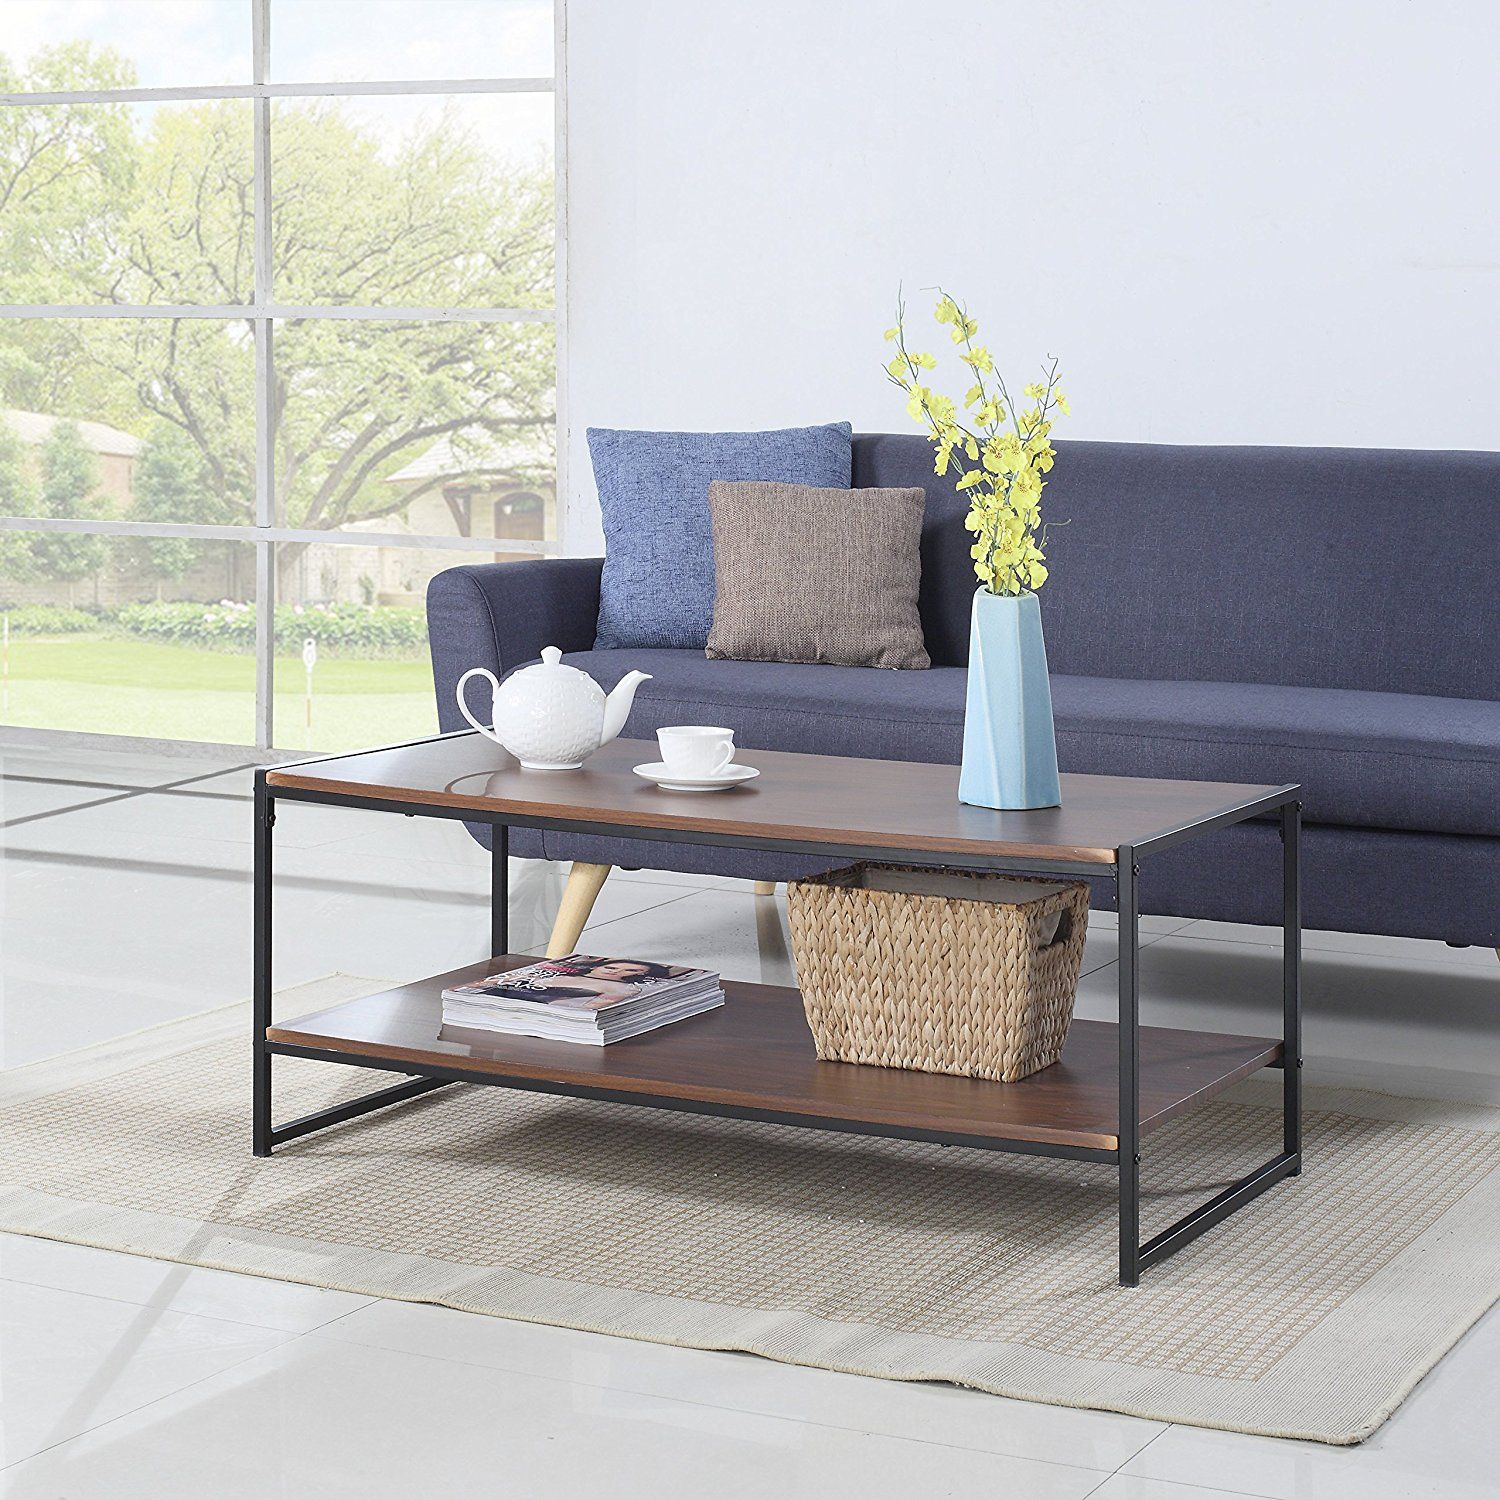 31 Cheap Coffee Tables That Cost Under $100 From Amazon